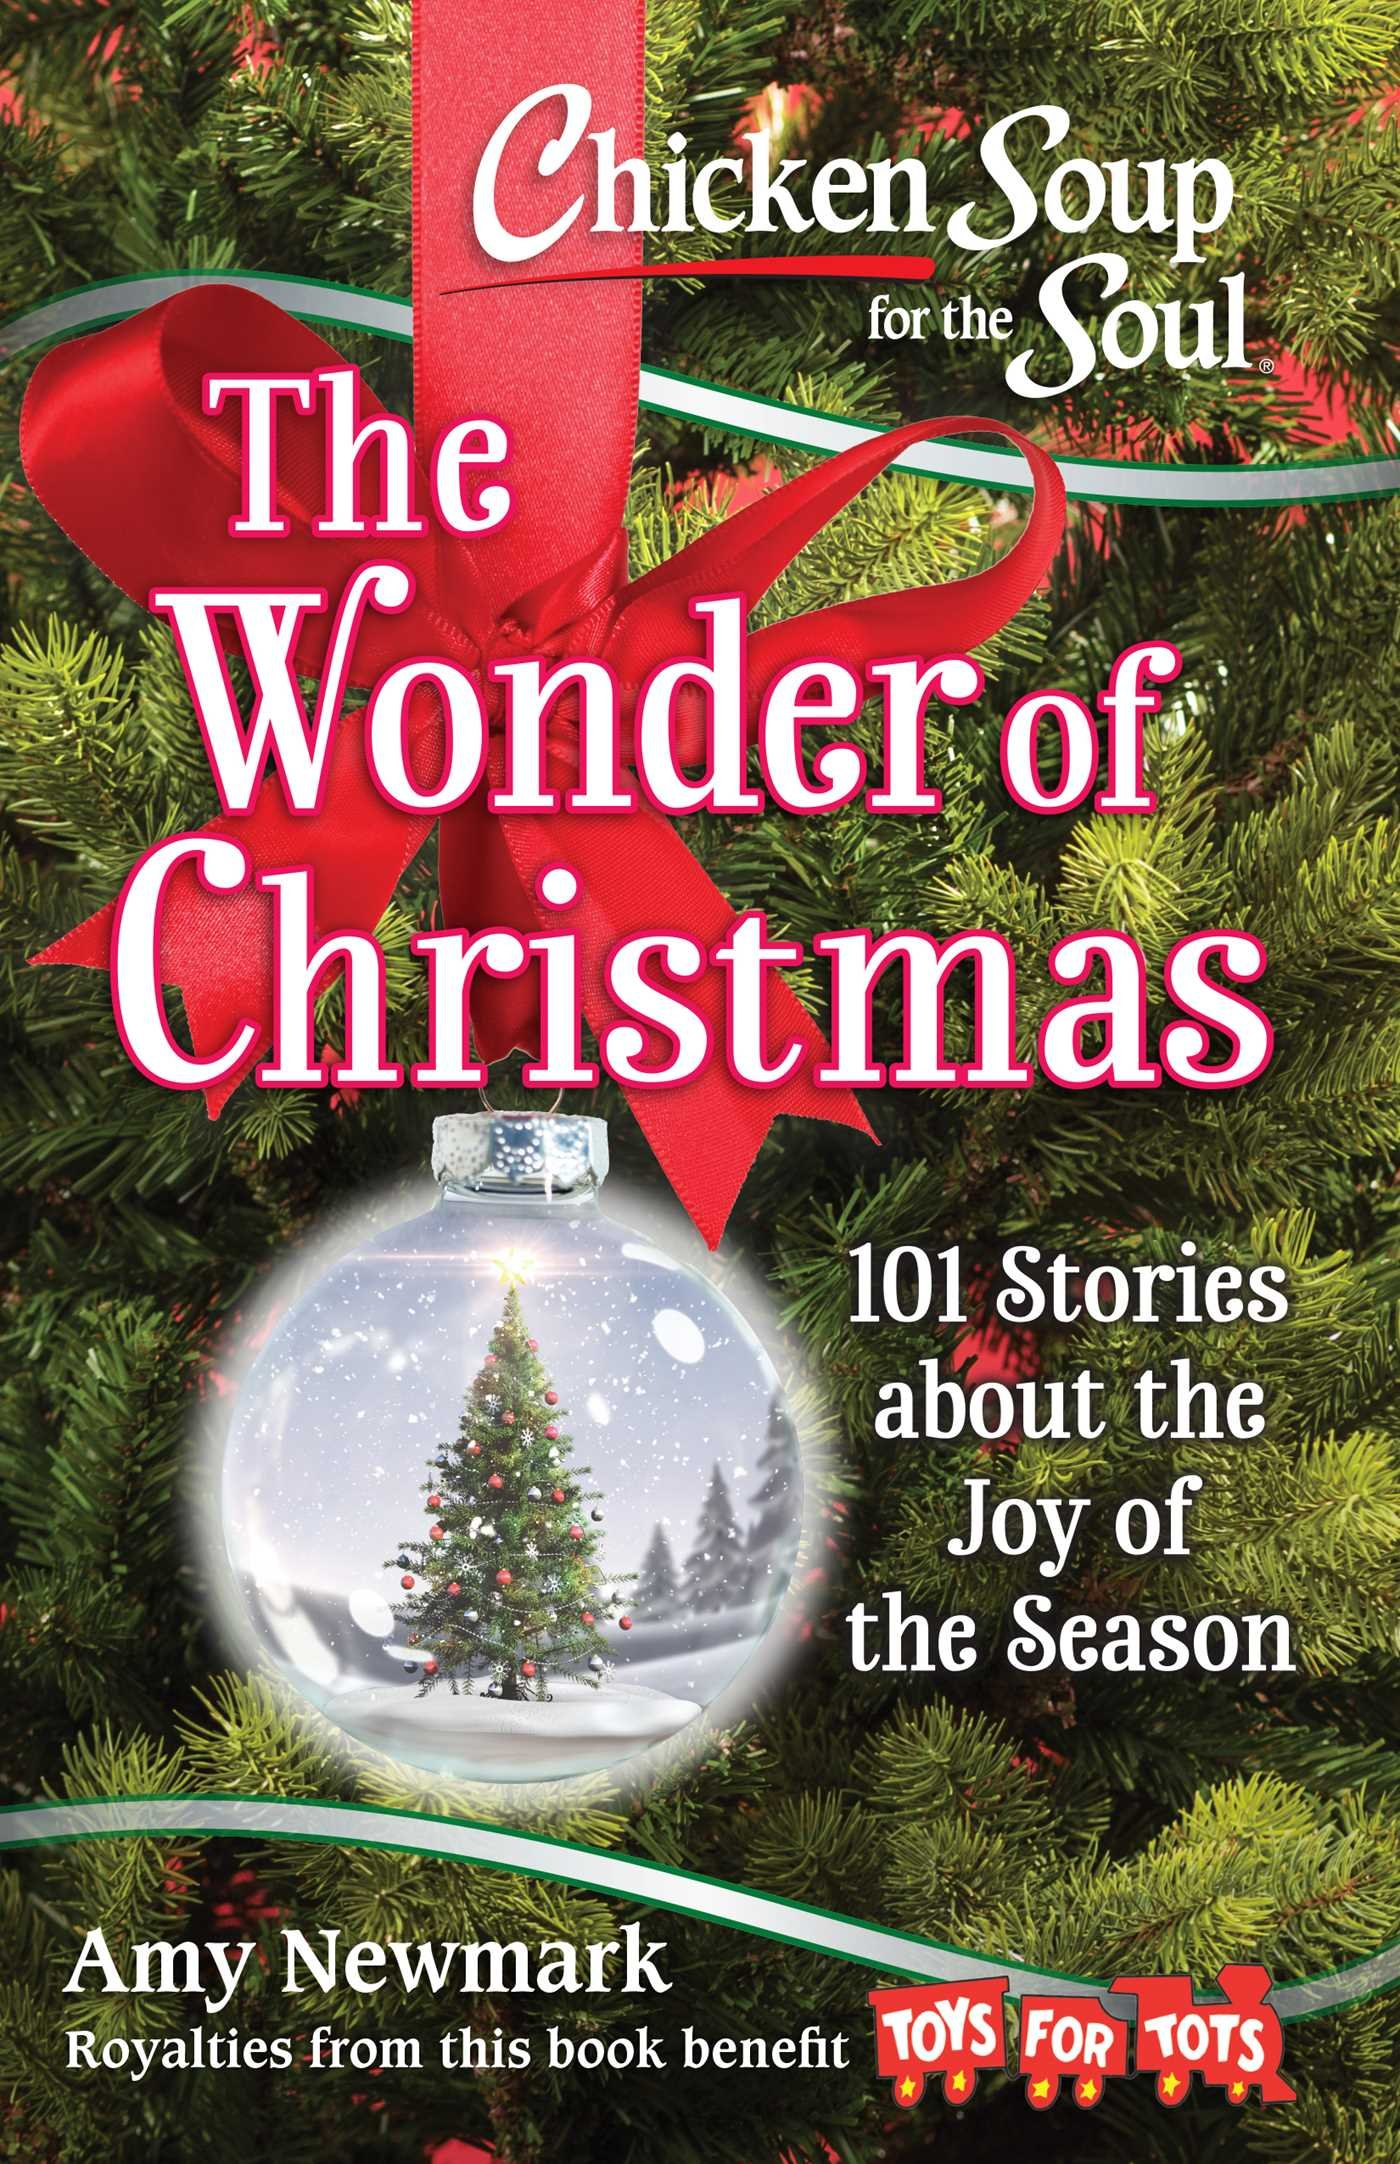 Chicken soup for the soul : the wonder of Christmas : 101 stories                about the joy of the season